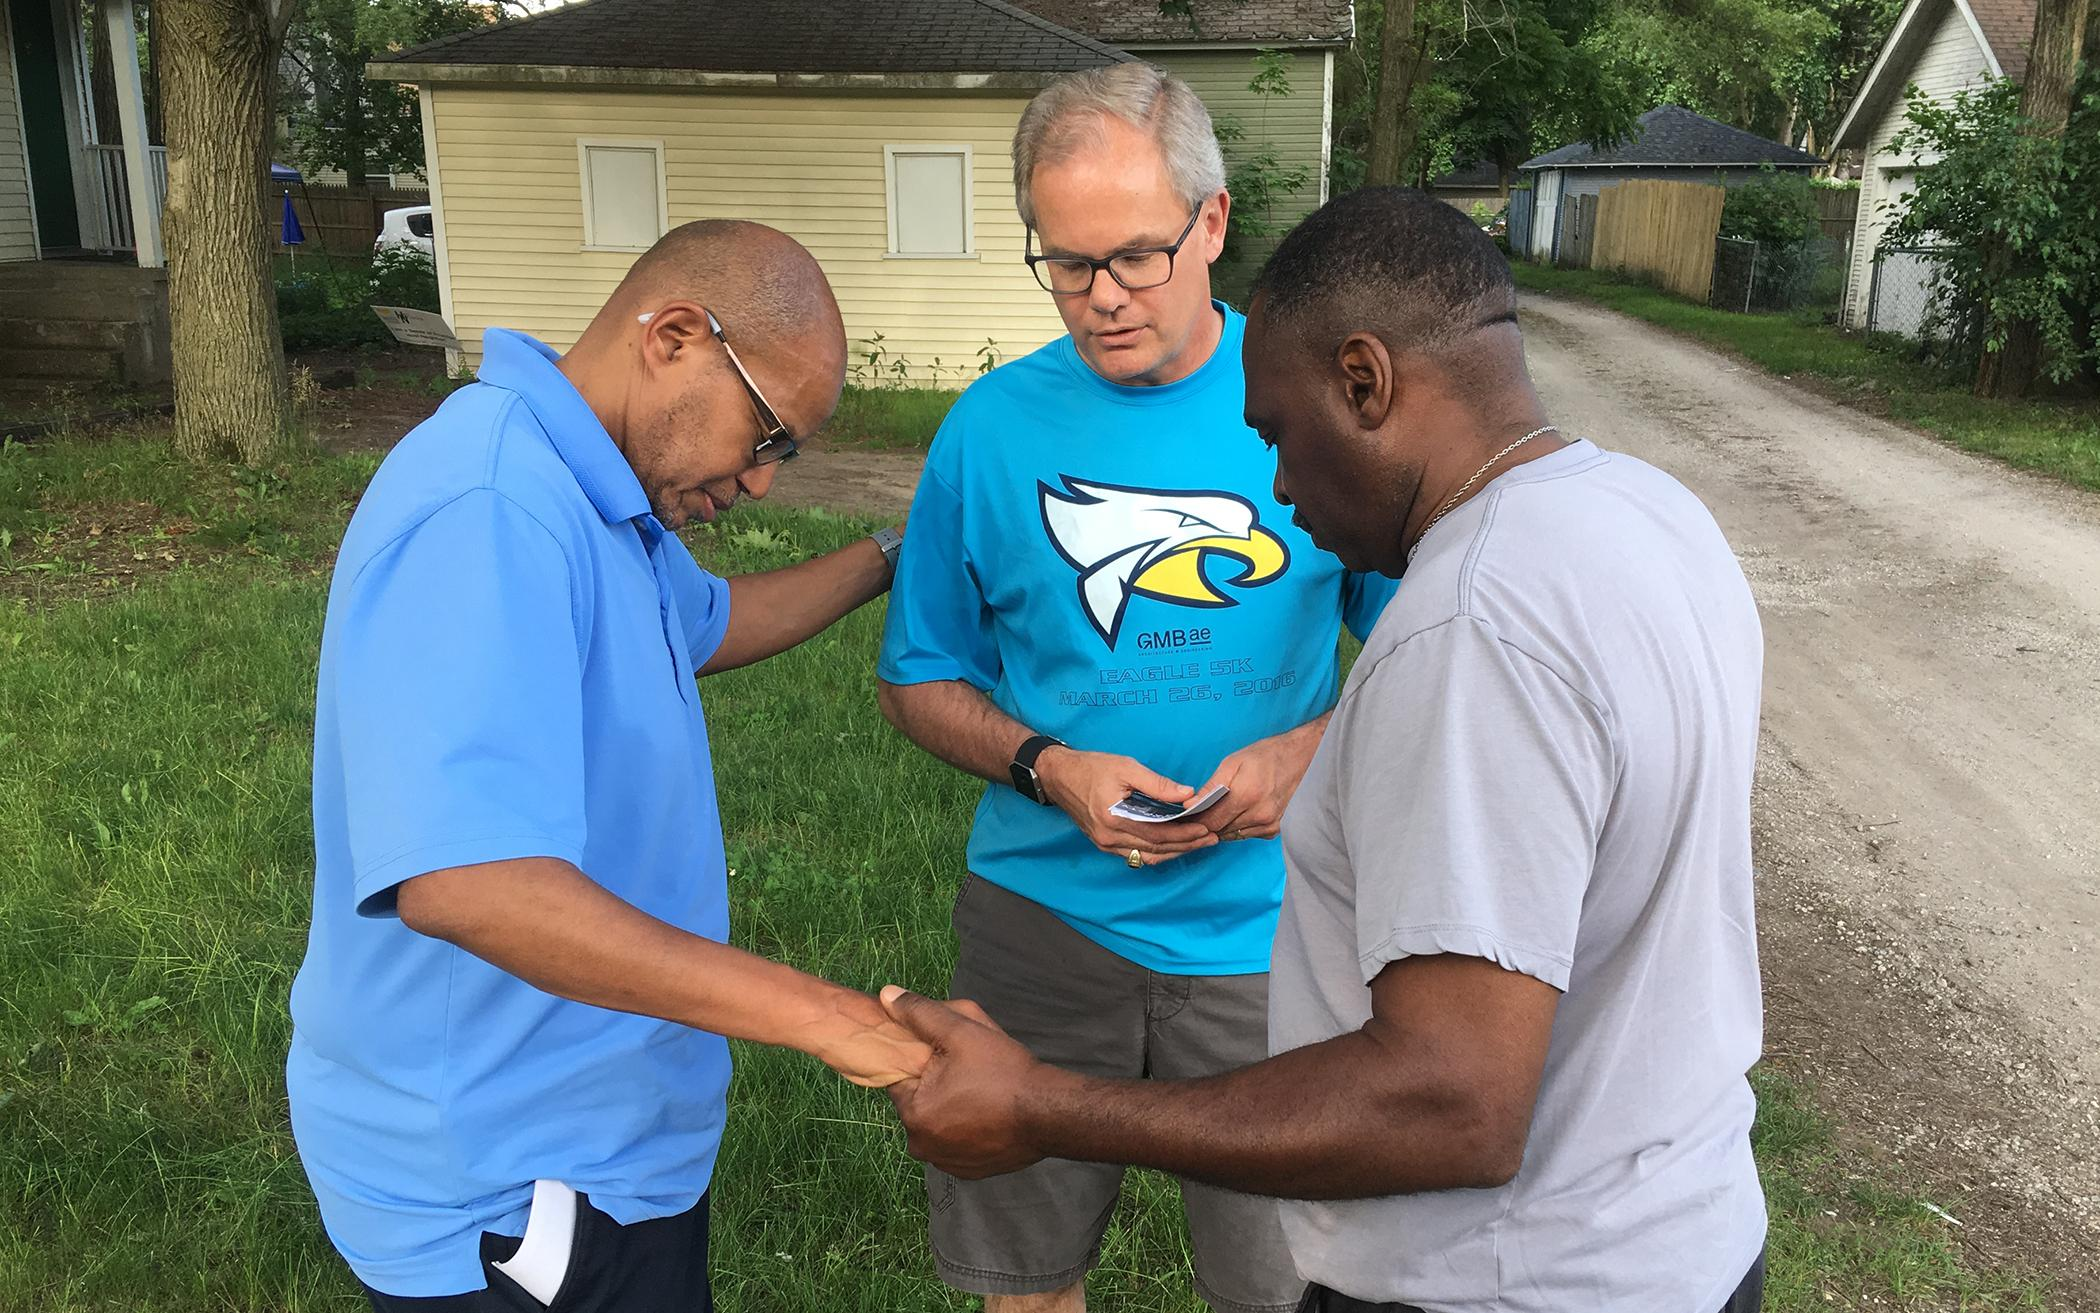 Grand Rapids Church Hosts Prayer Walks Over Gun Violence